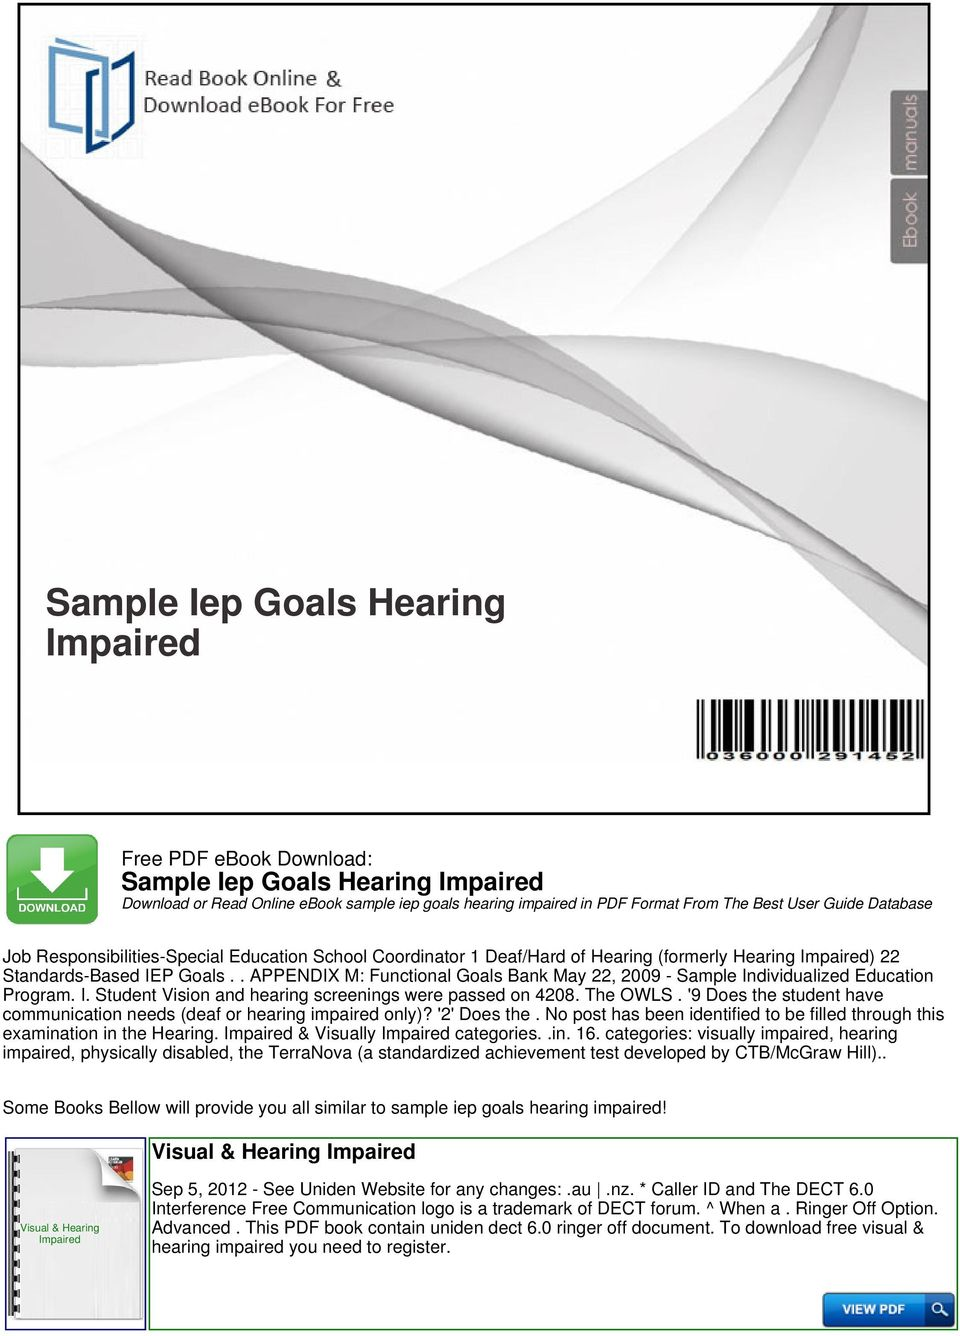 Sample iep goals hearing impaired pdf appendix m functional goals bank may 22 2009 individualized education program fandeluxe Images